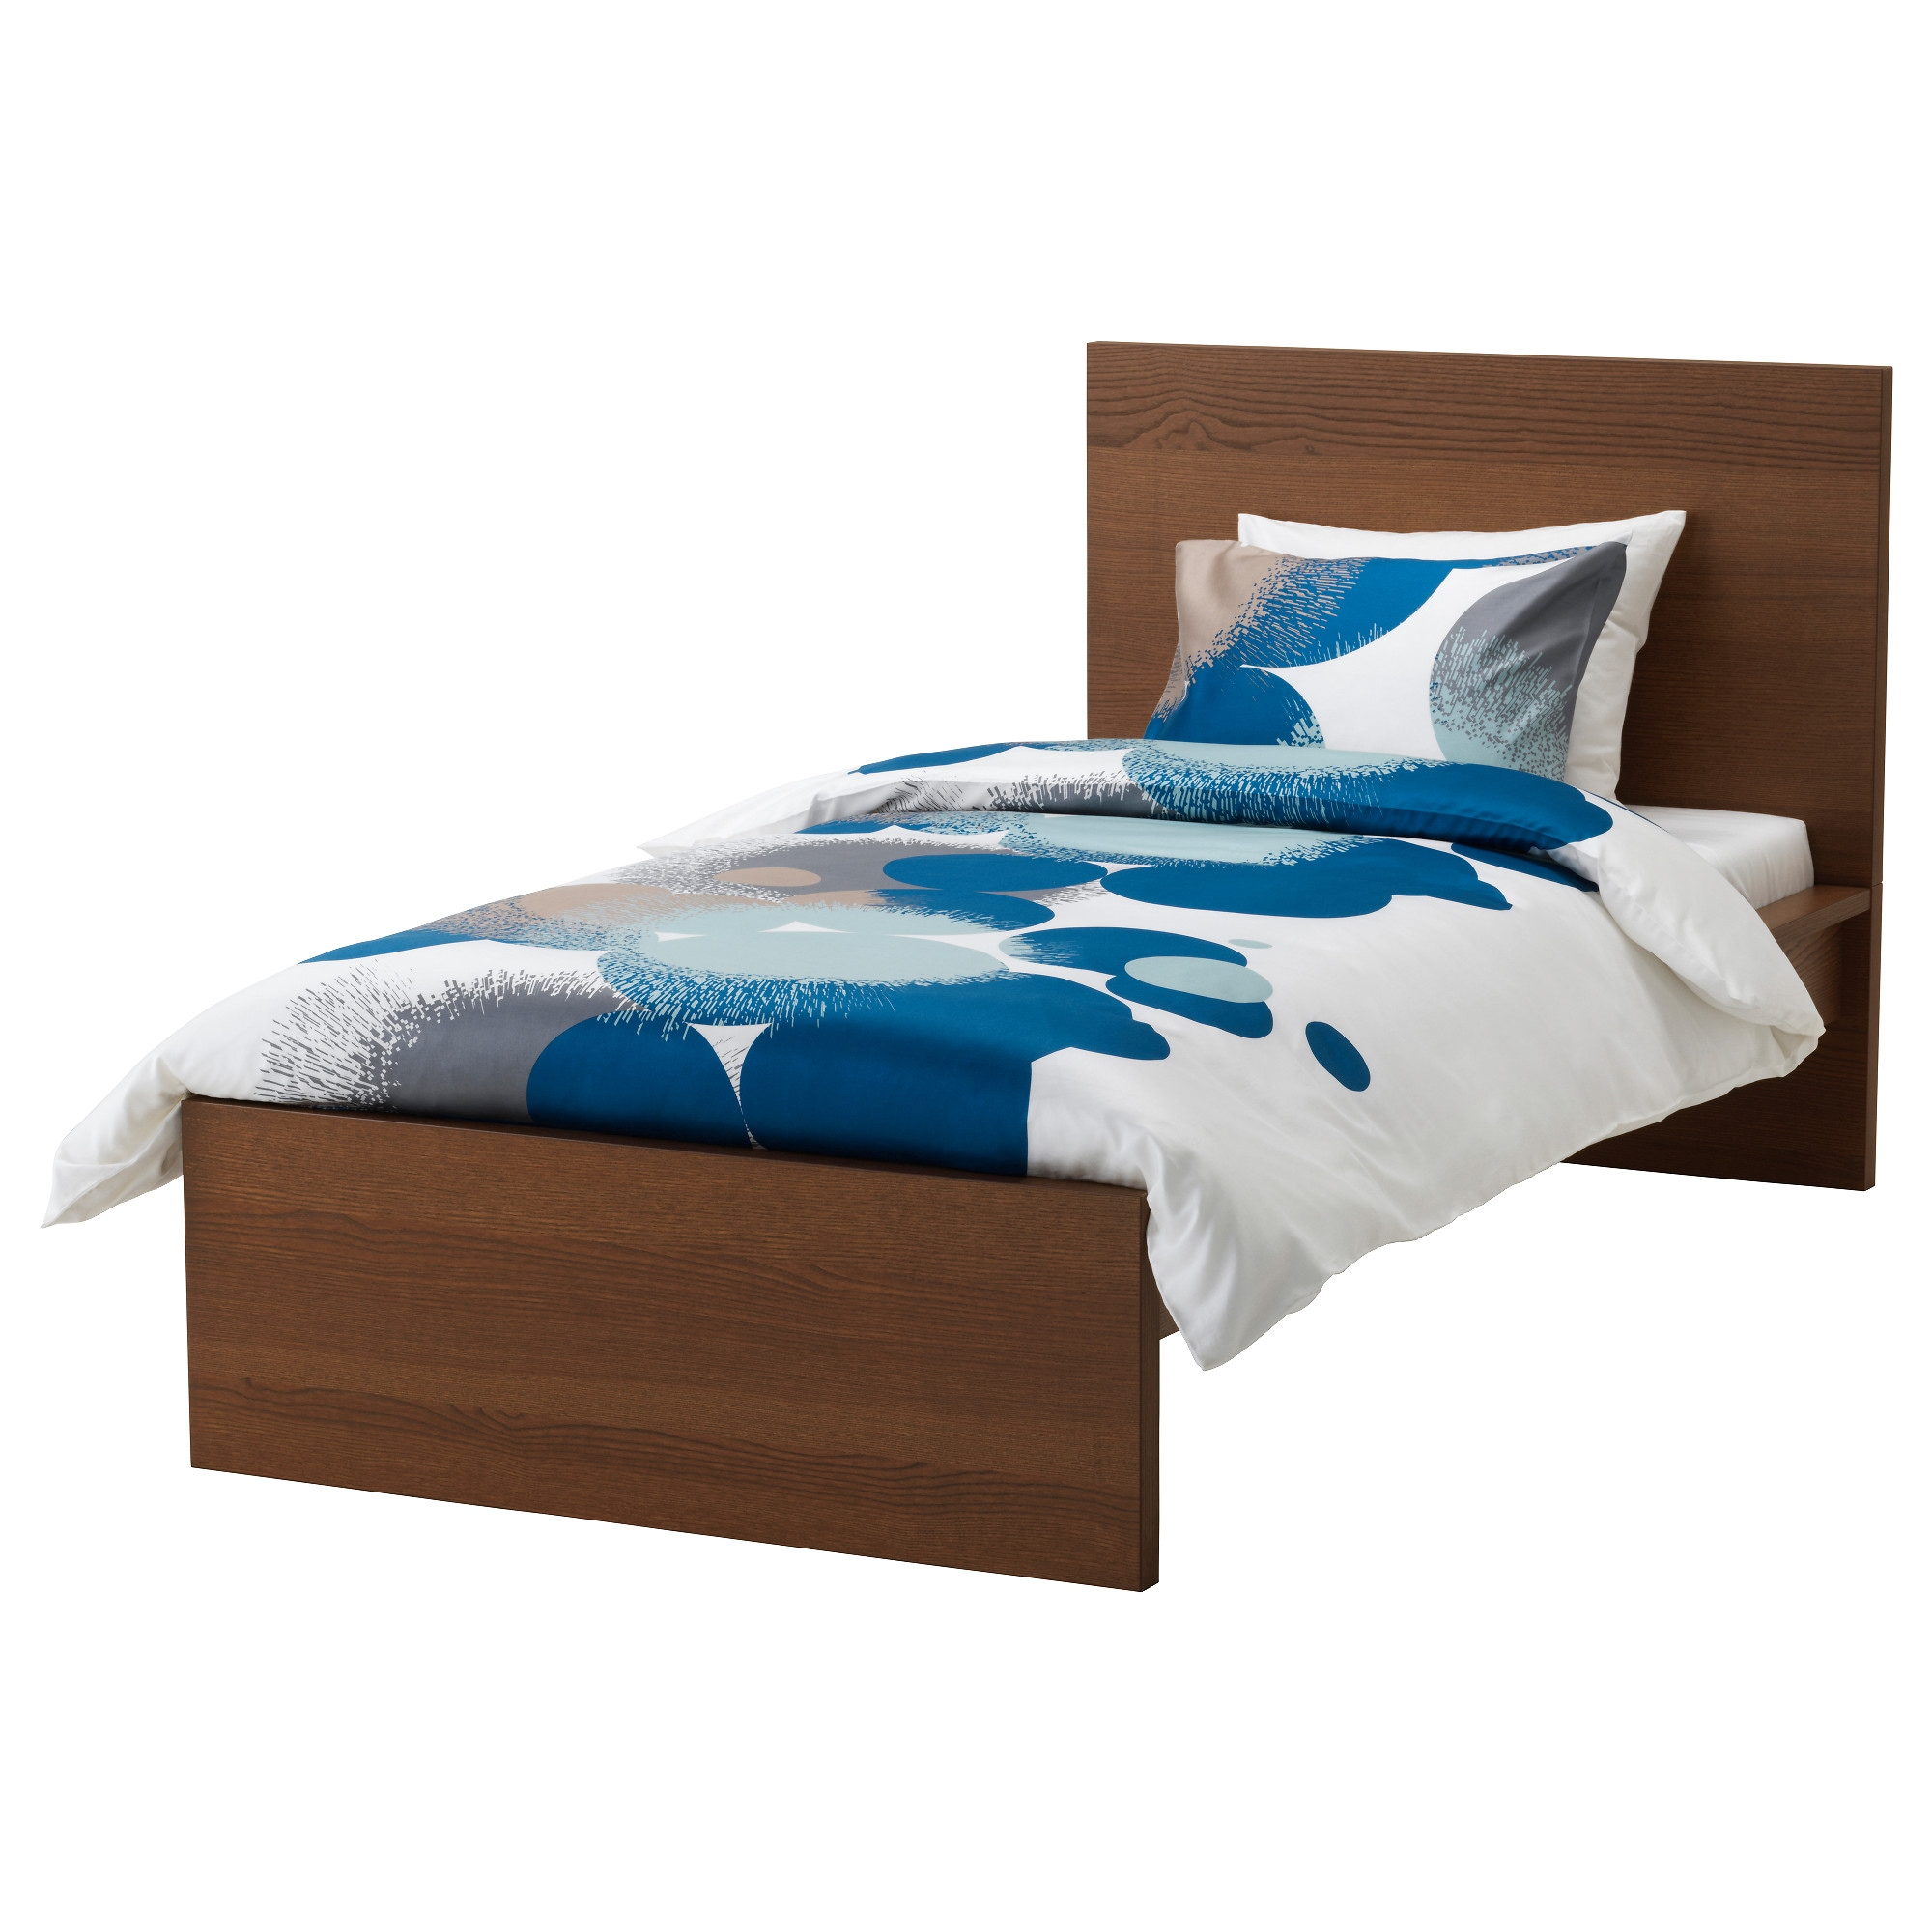 MALM Bed frame, high - Luröy, brown stained ash veneer - IKEA